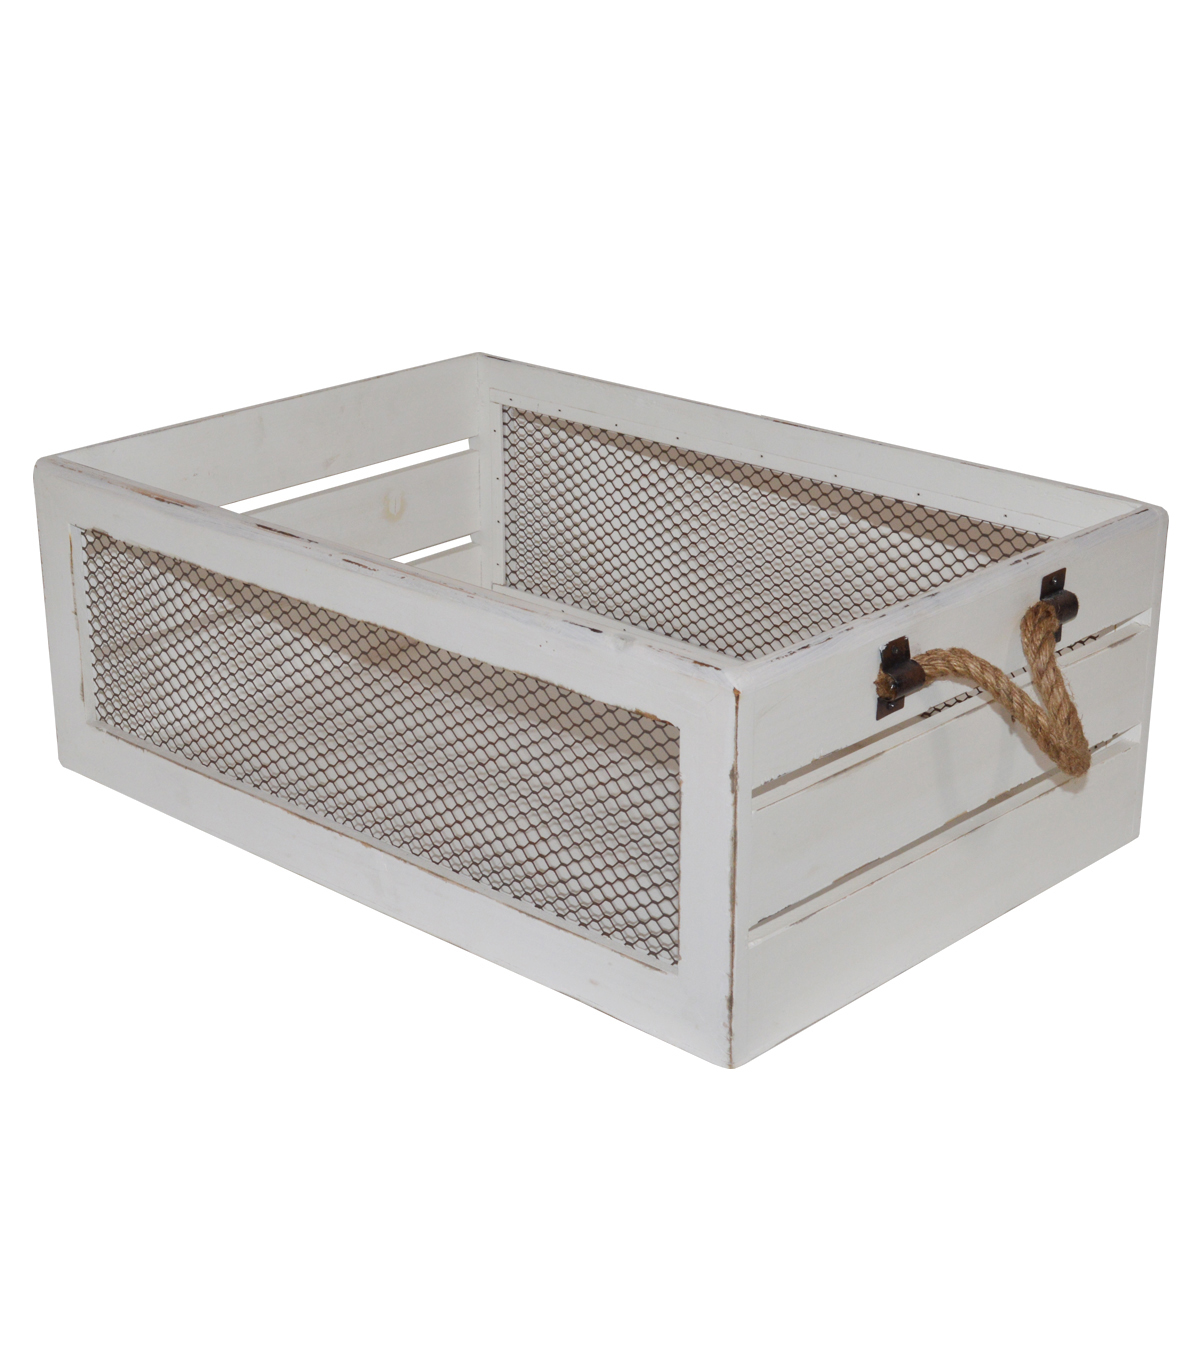 Farm Storage Large Crate with Chicken Wire-White | JOANN